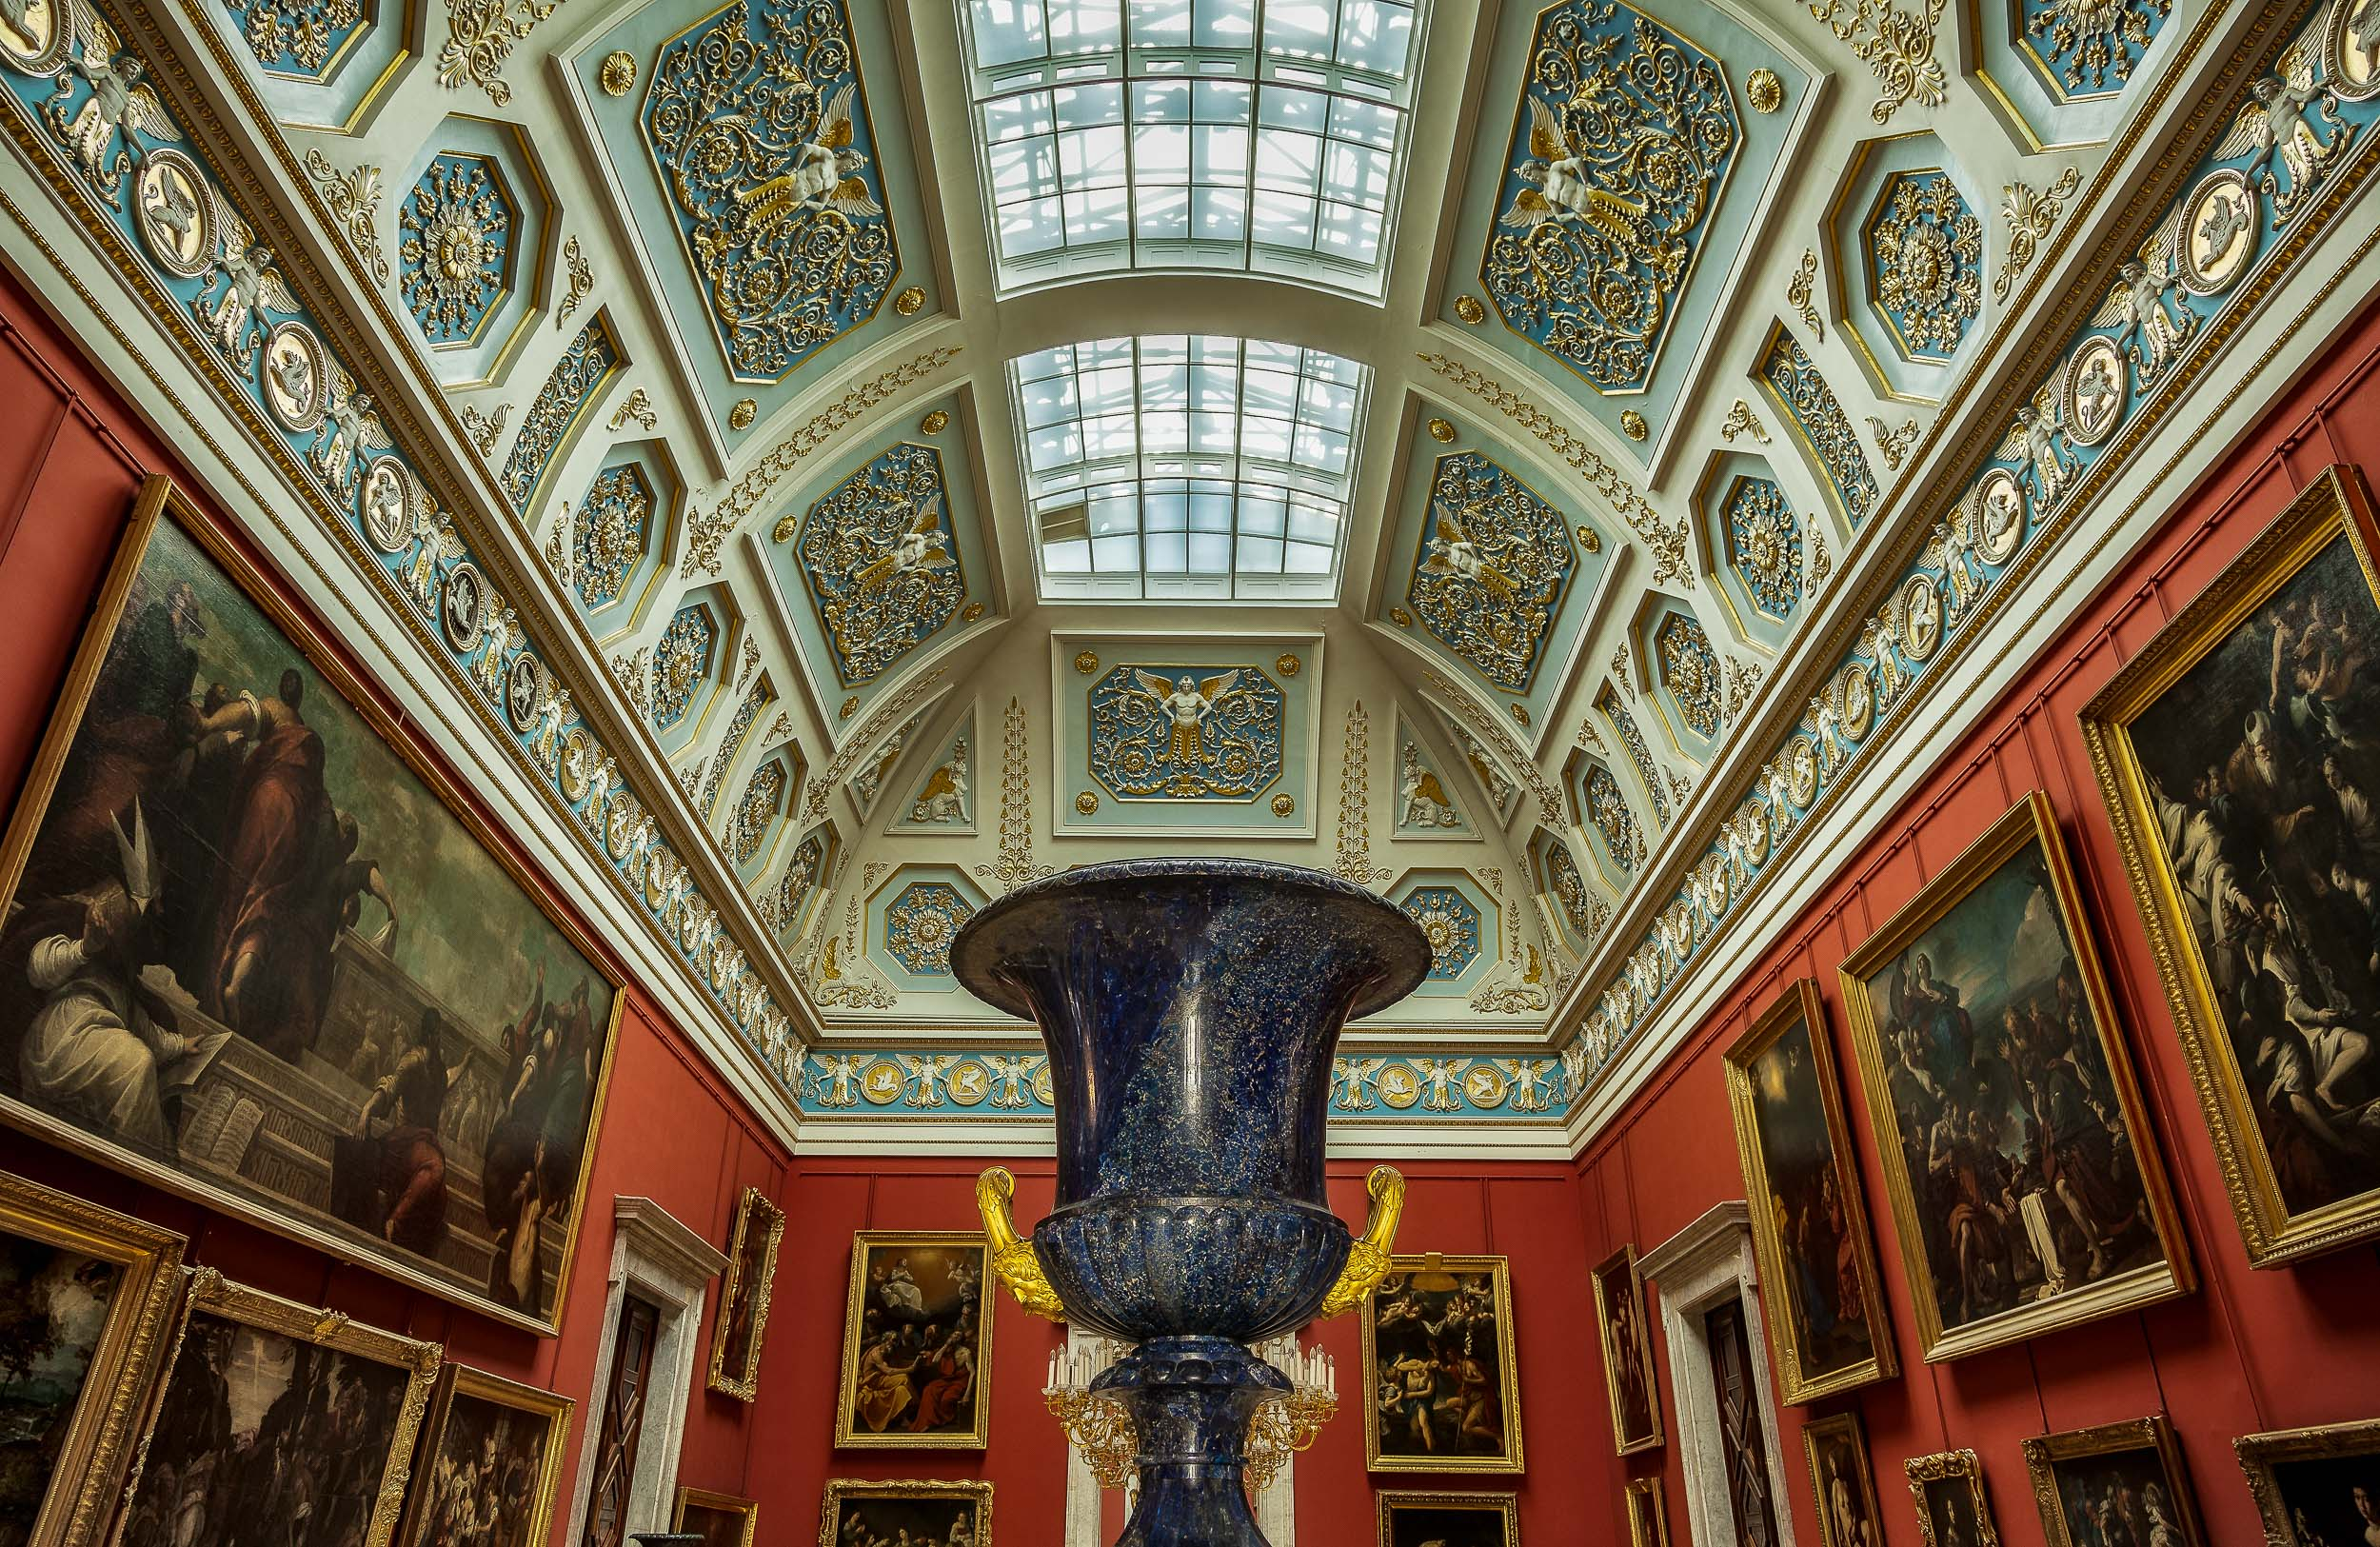 A highly structured interior view of a gallery within the Hermitage Museum in St. Petersburg, Russia .